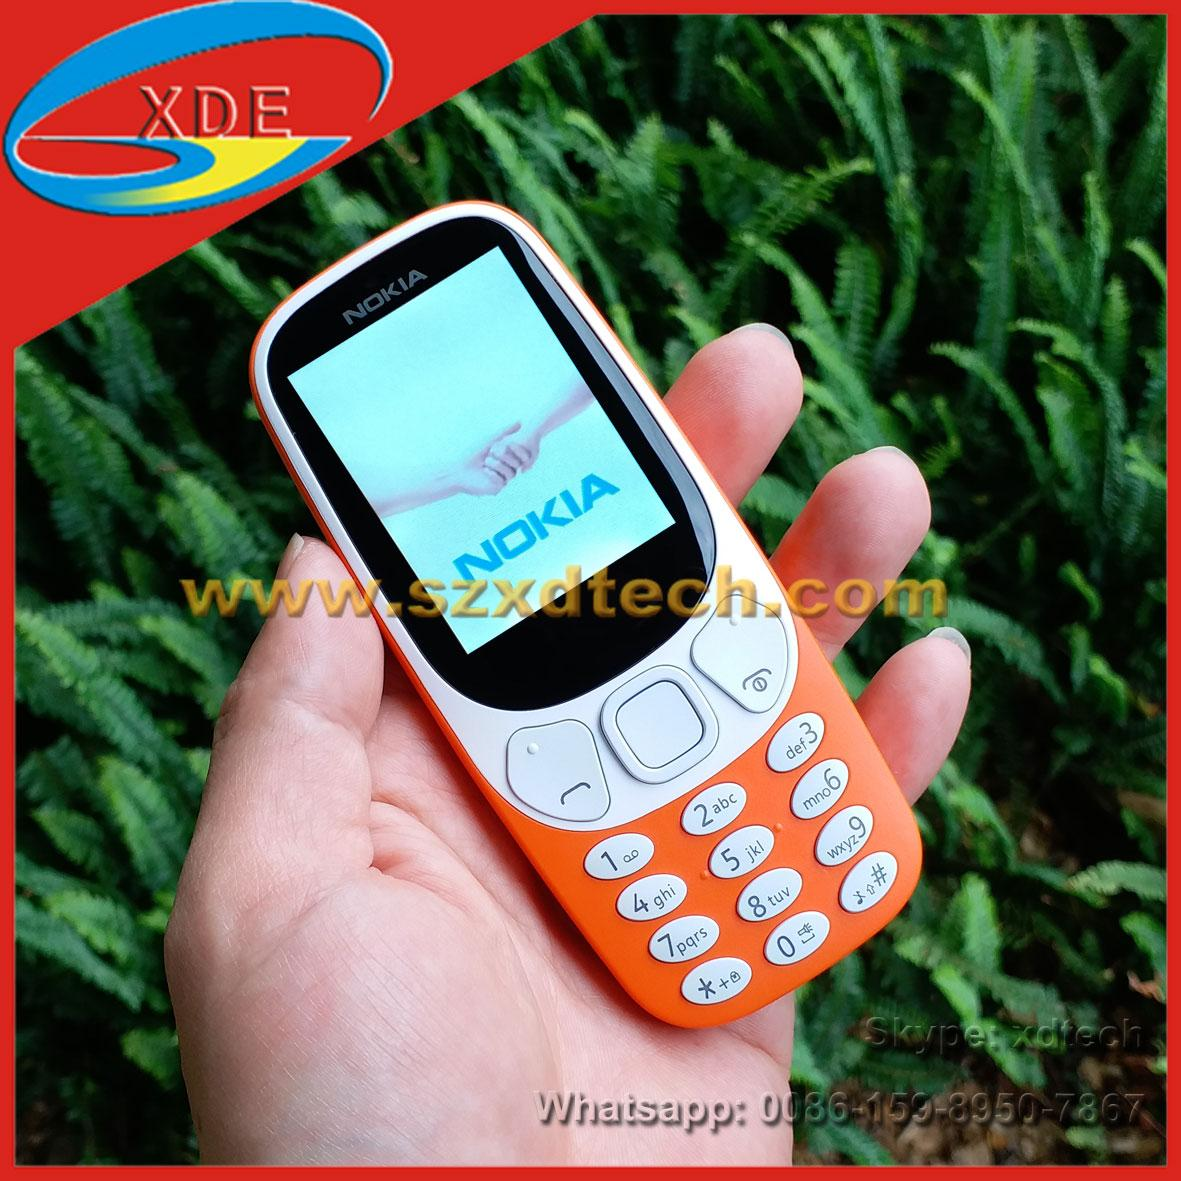 Cheap Nokia 3310 Replica Nokia Mobile Phones Good Battery Easy-taking Phones 1